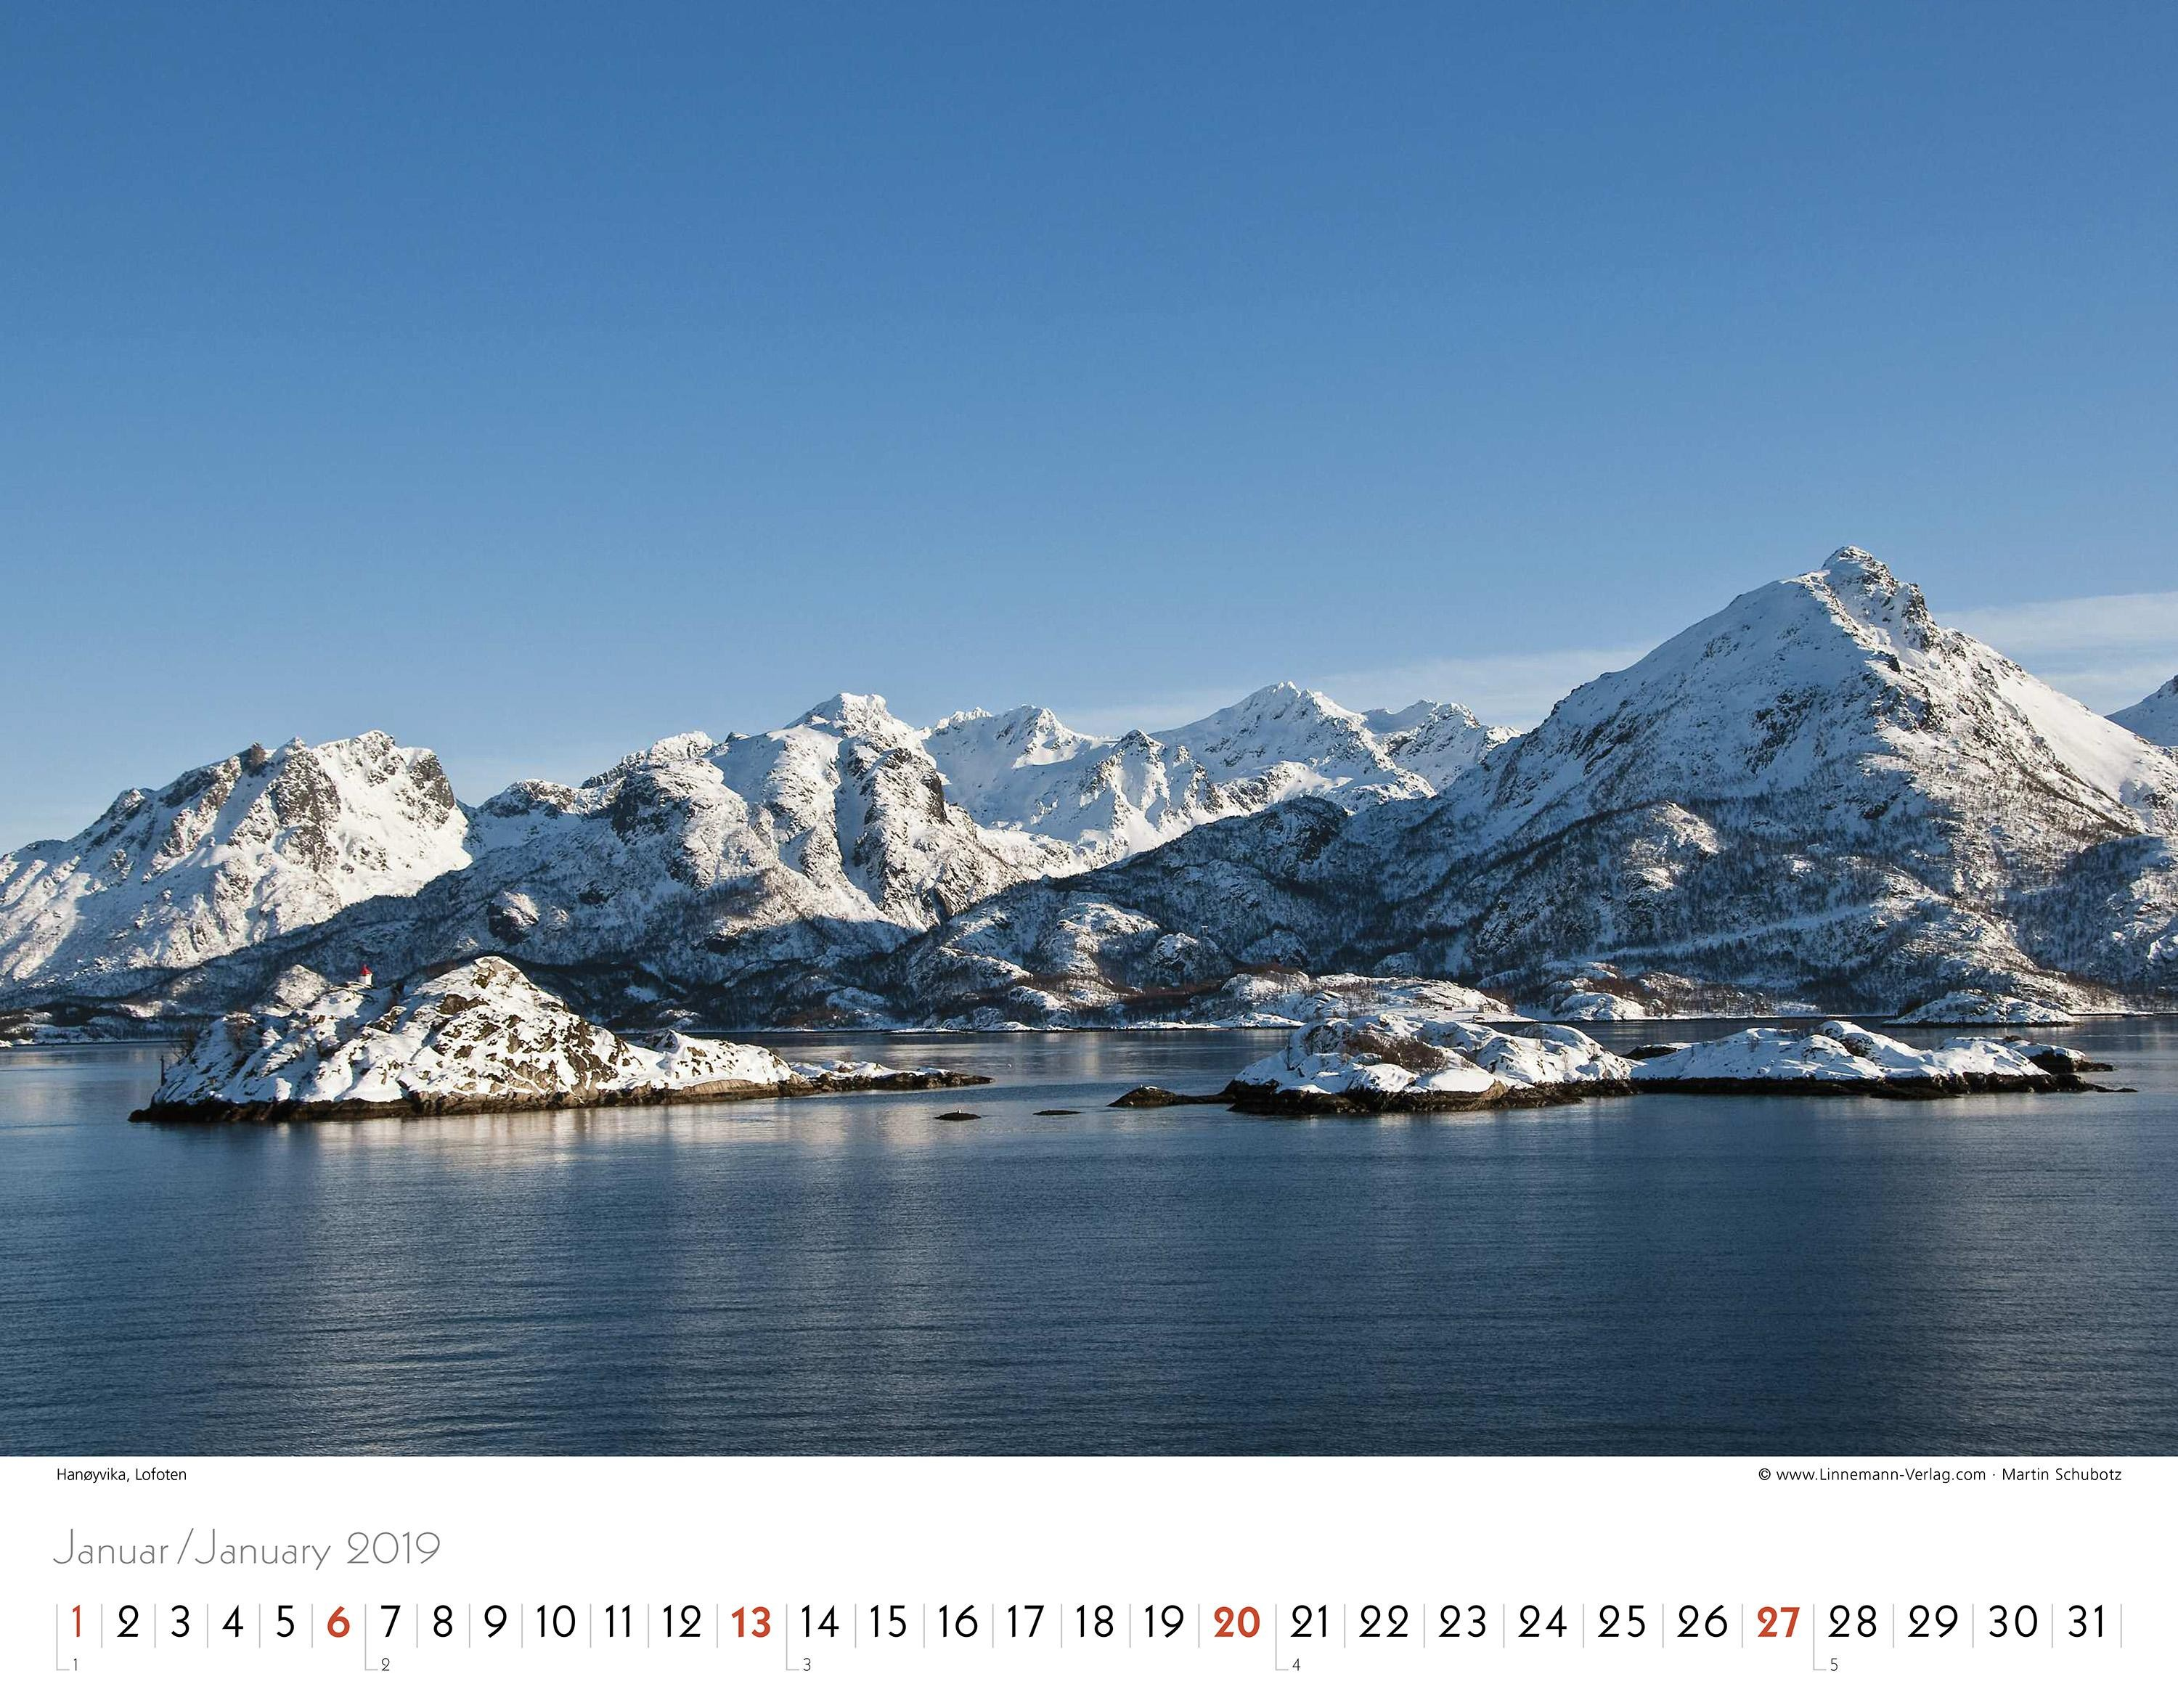 March 2019 Calendar Landscape Más Recientes Kalender Hurtigruten 2019 Of March 2019 Calendar Landscape Más Recientemente Liberado December 2019 Calendar